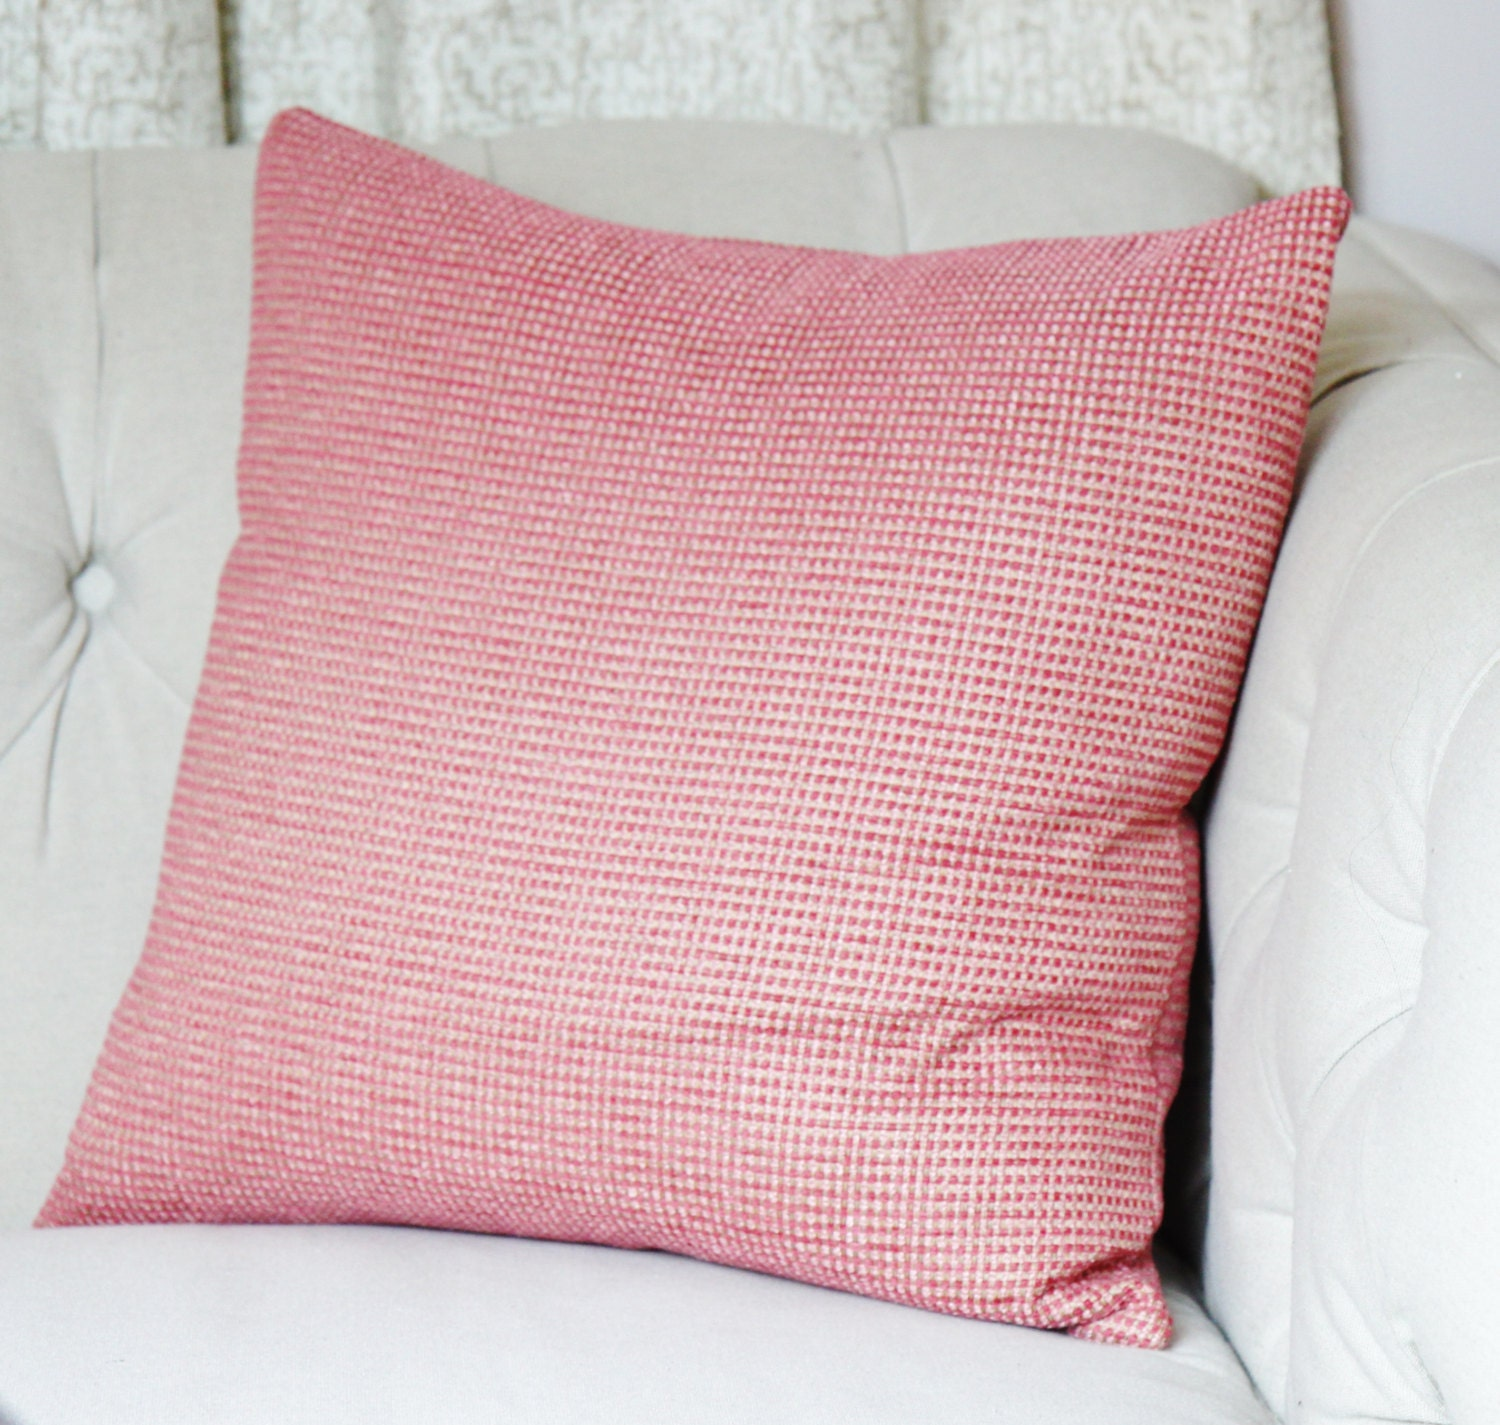 Dark Coral Throw Pillows : Coral Pink Woven Pillow Cover Dark Pink and Light Pink Toss